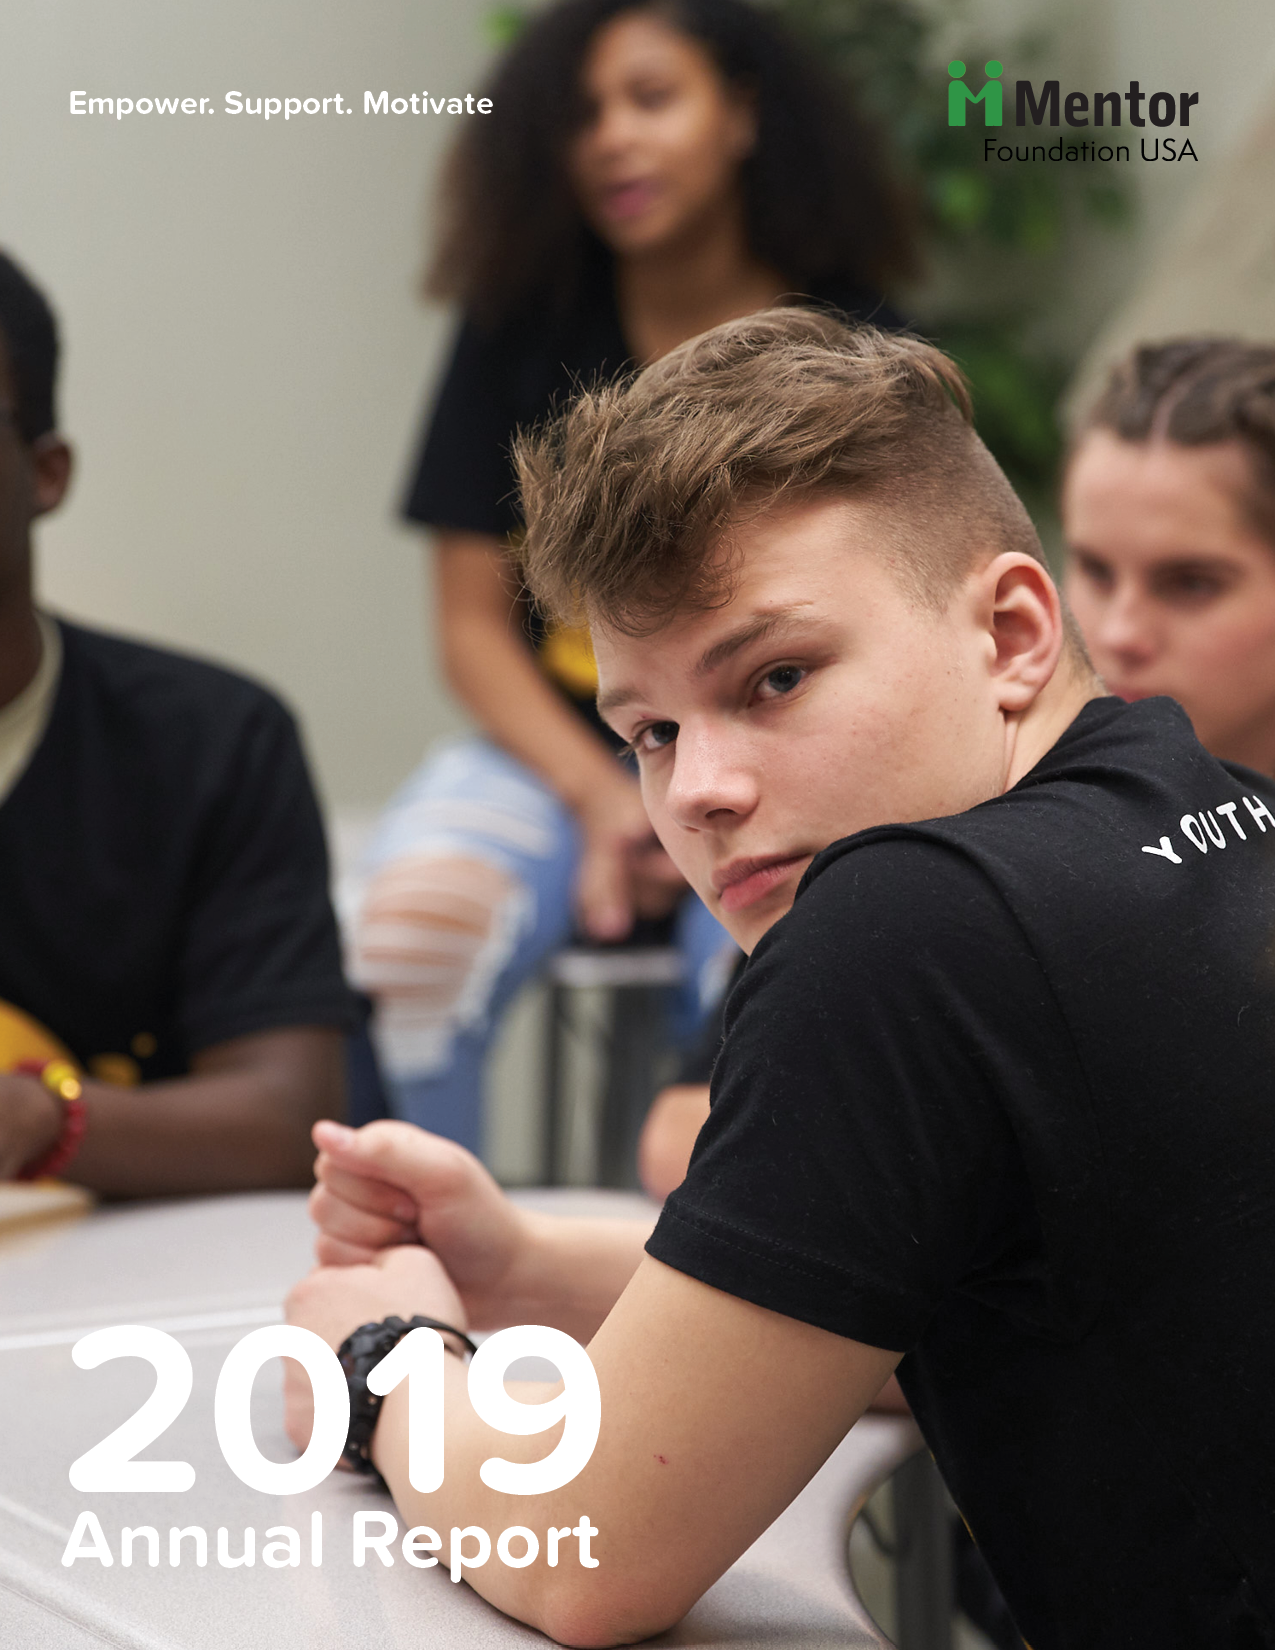 Mentor USA Annual Report 2019